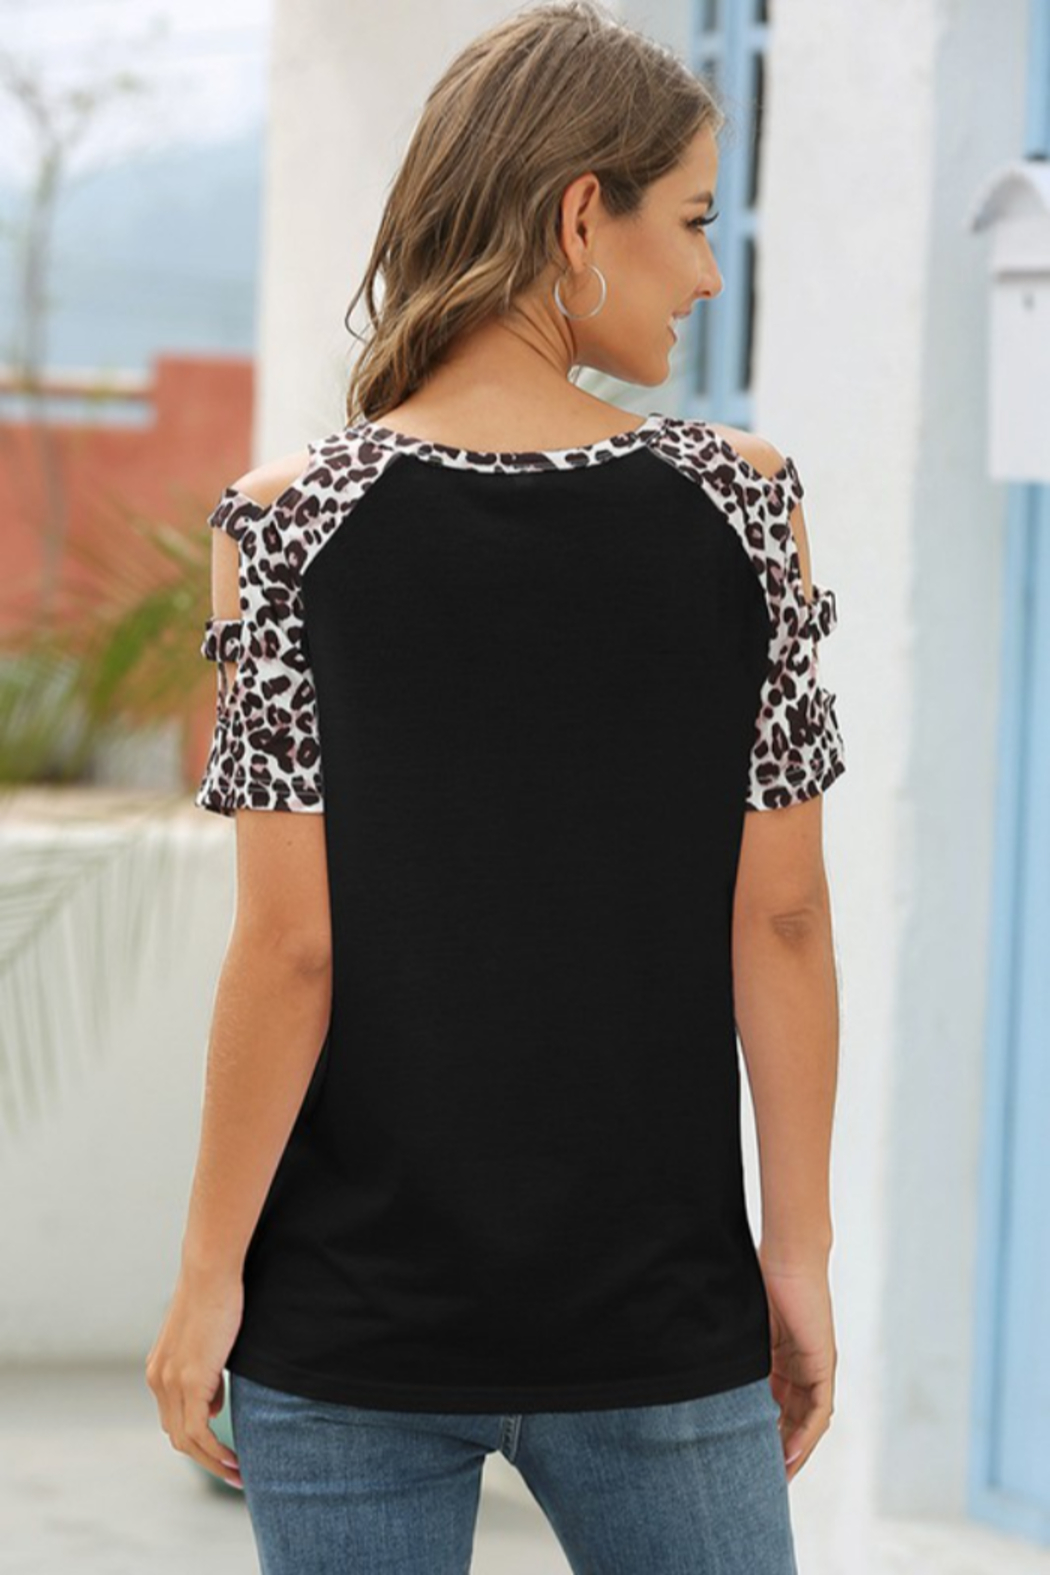 lily clothing Leopard Short Sleeve Top - Side Cropped Image